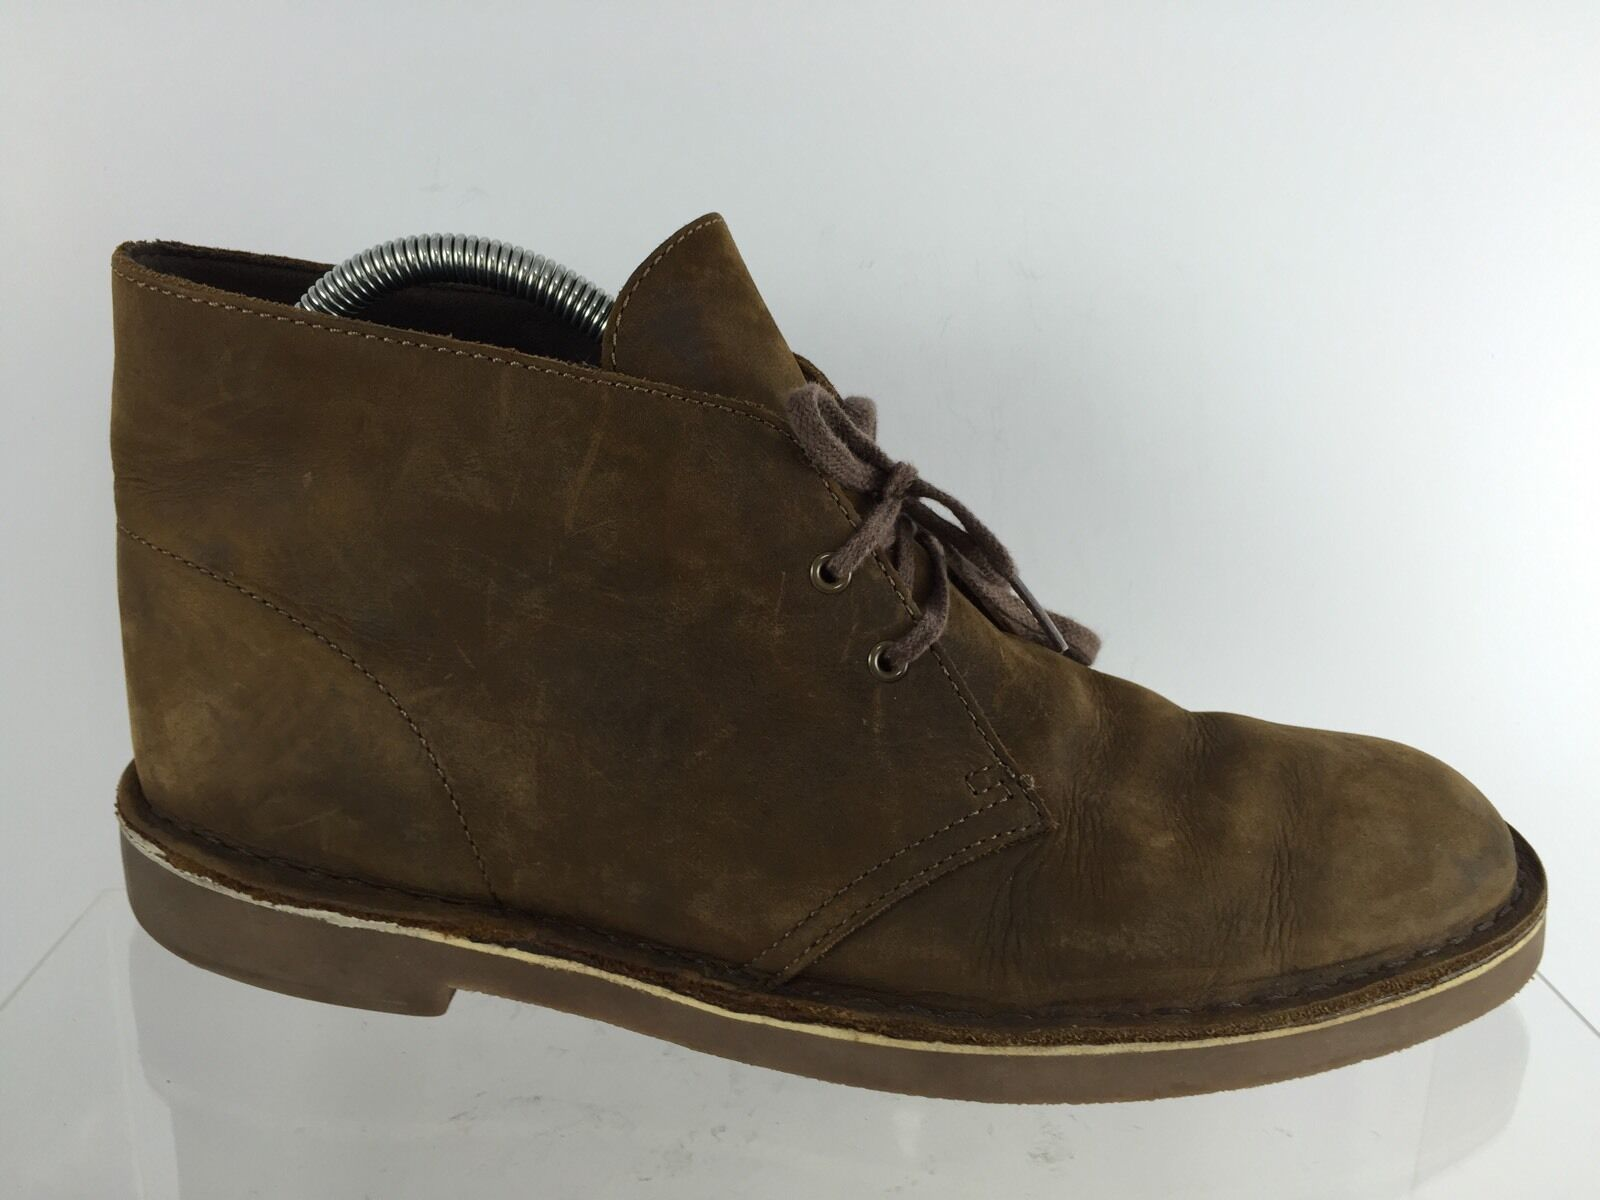 Clarks Mens Brown Leather Ankle Boots 10.5 M